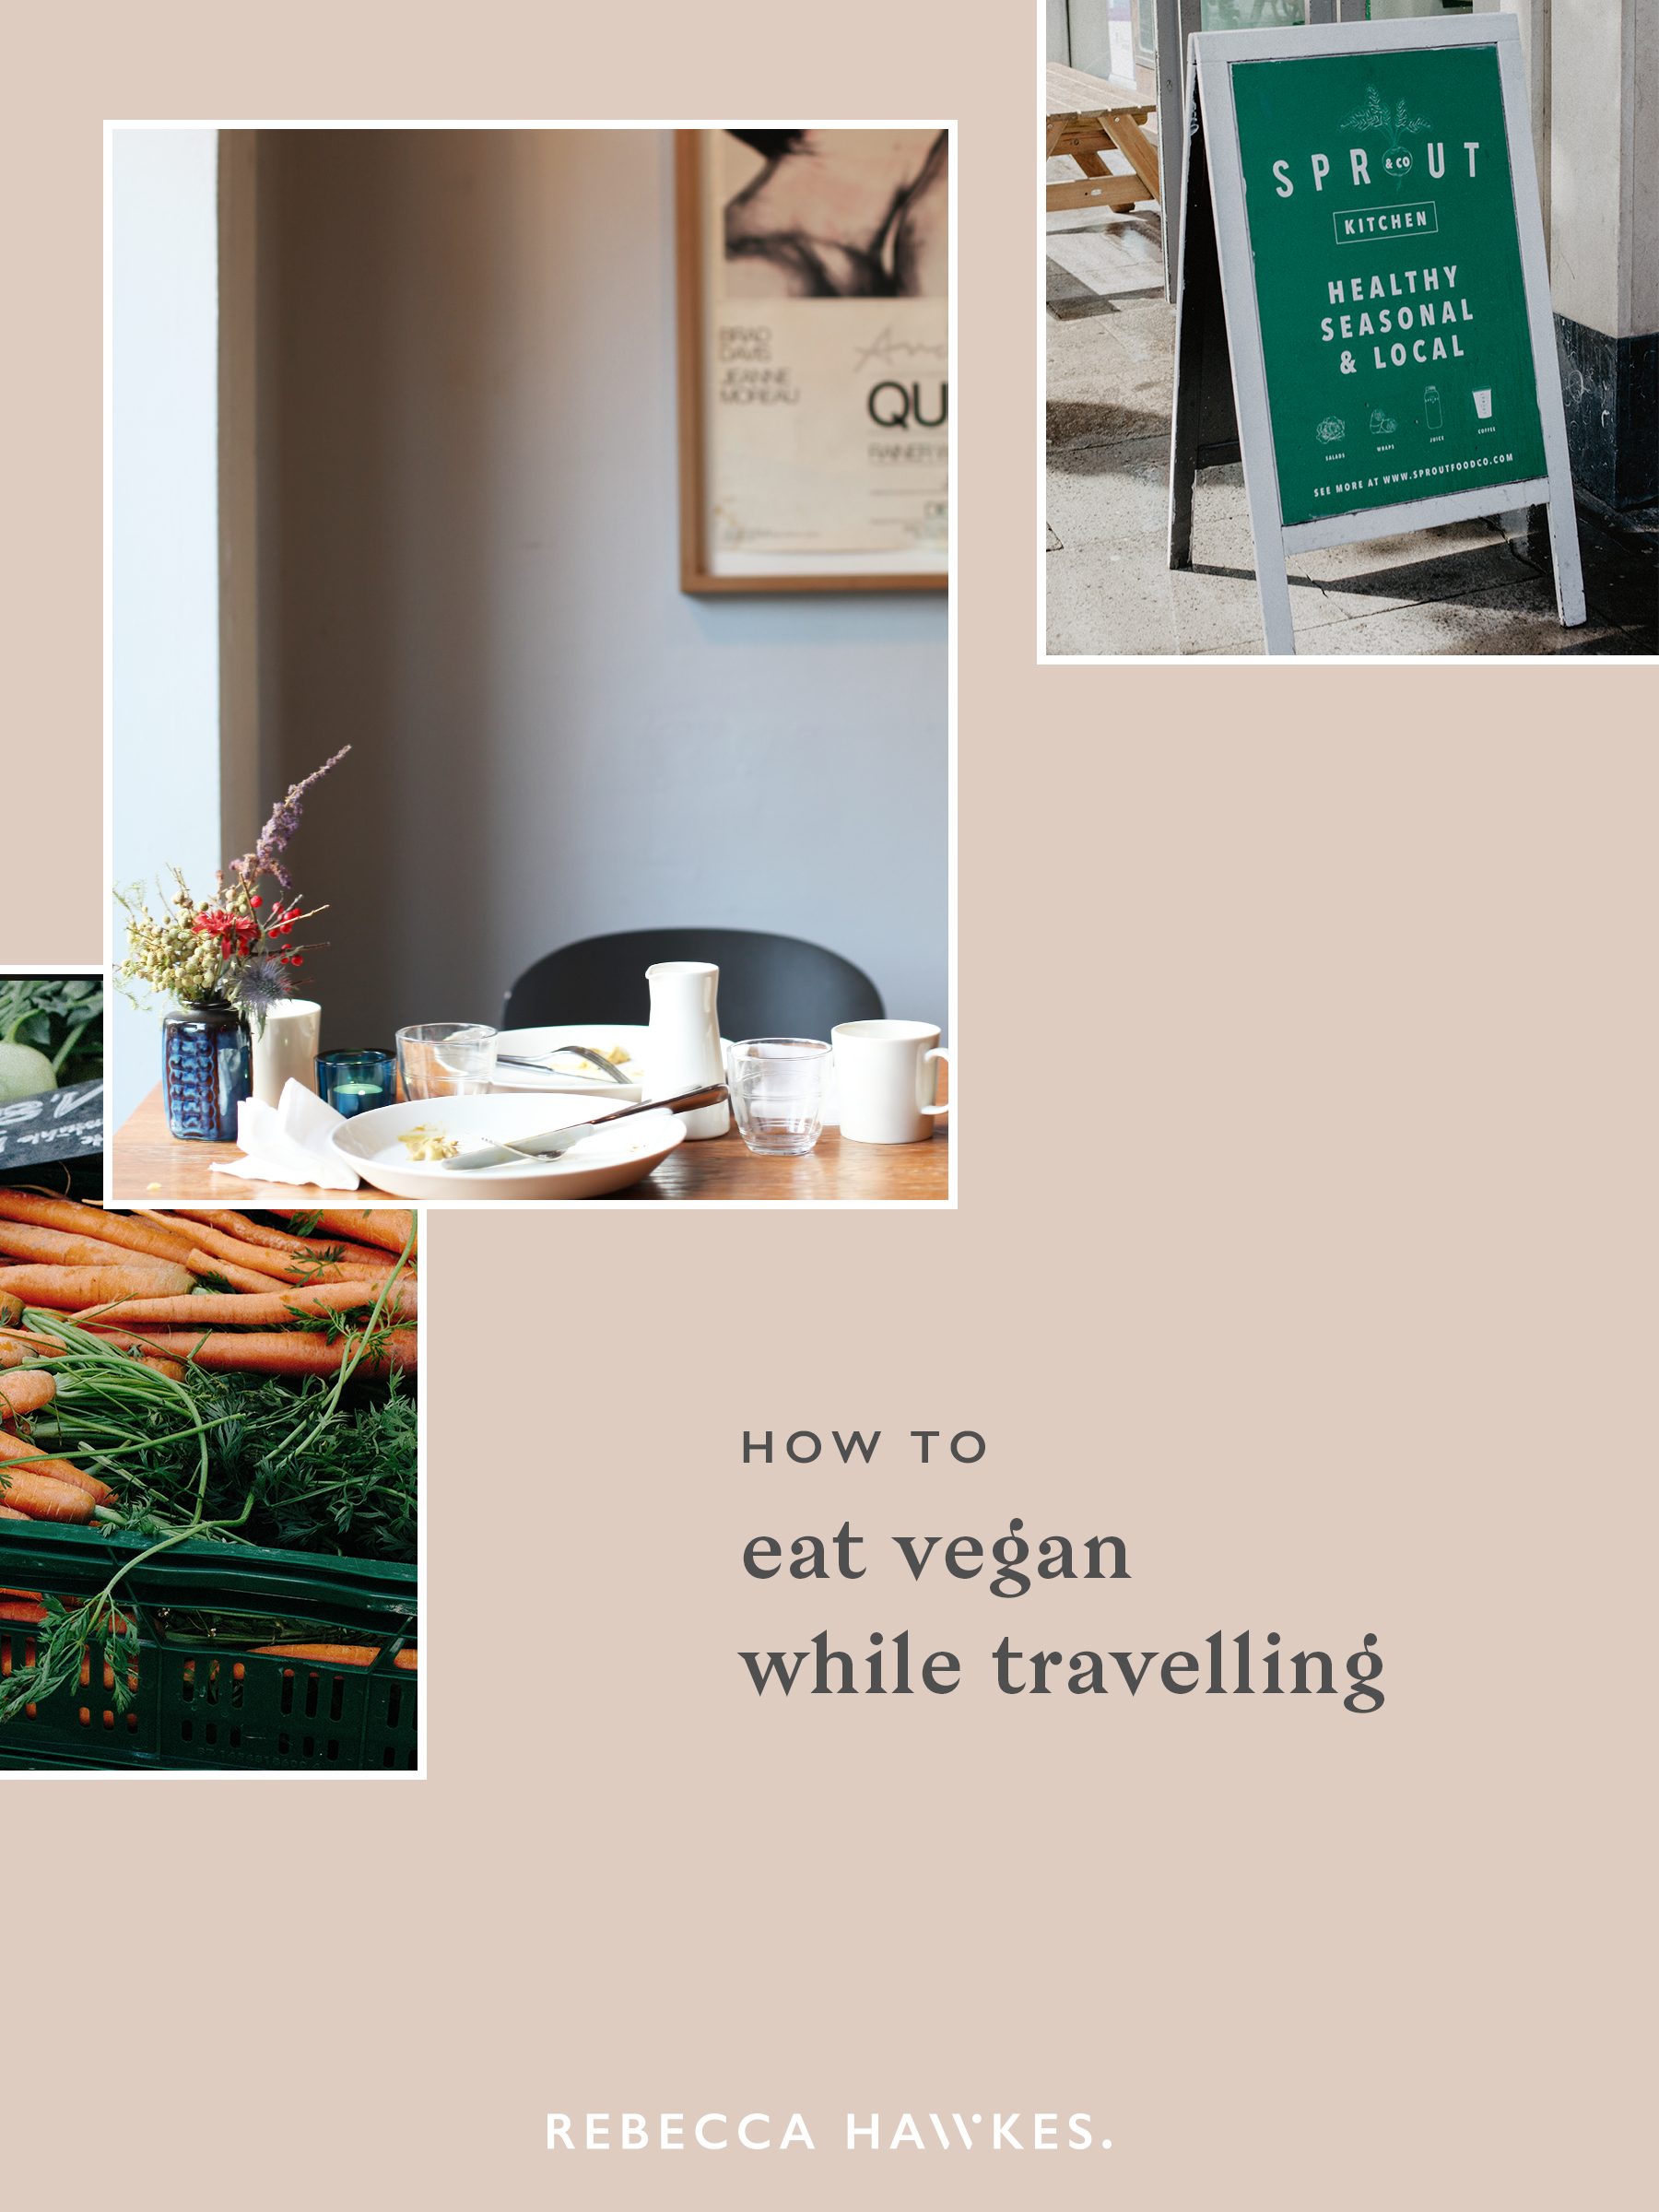 An easy guide to eating vegan when travelling! Healthy plant-based tips for travellers embracing remote living from ethical graphic designer Rebecca Hawkes